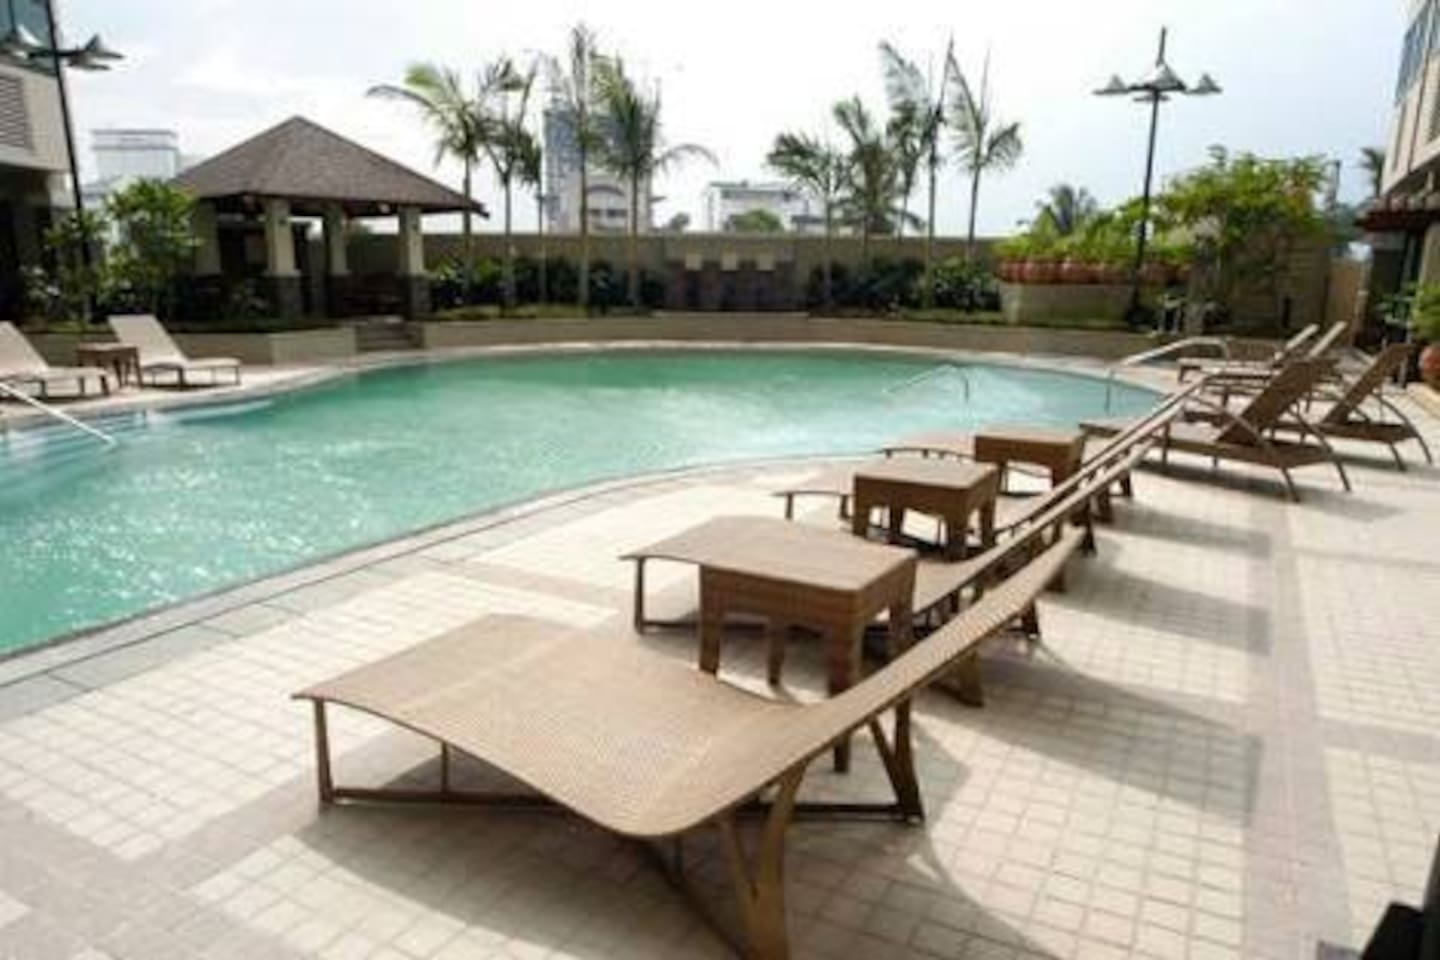 Crib for sale mandaluyong - Lee Gardens Shaw Blvd Mandaluyong City Condominiums For Rent In Mandaluyong Metro Manila Philippines